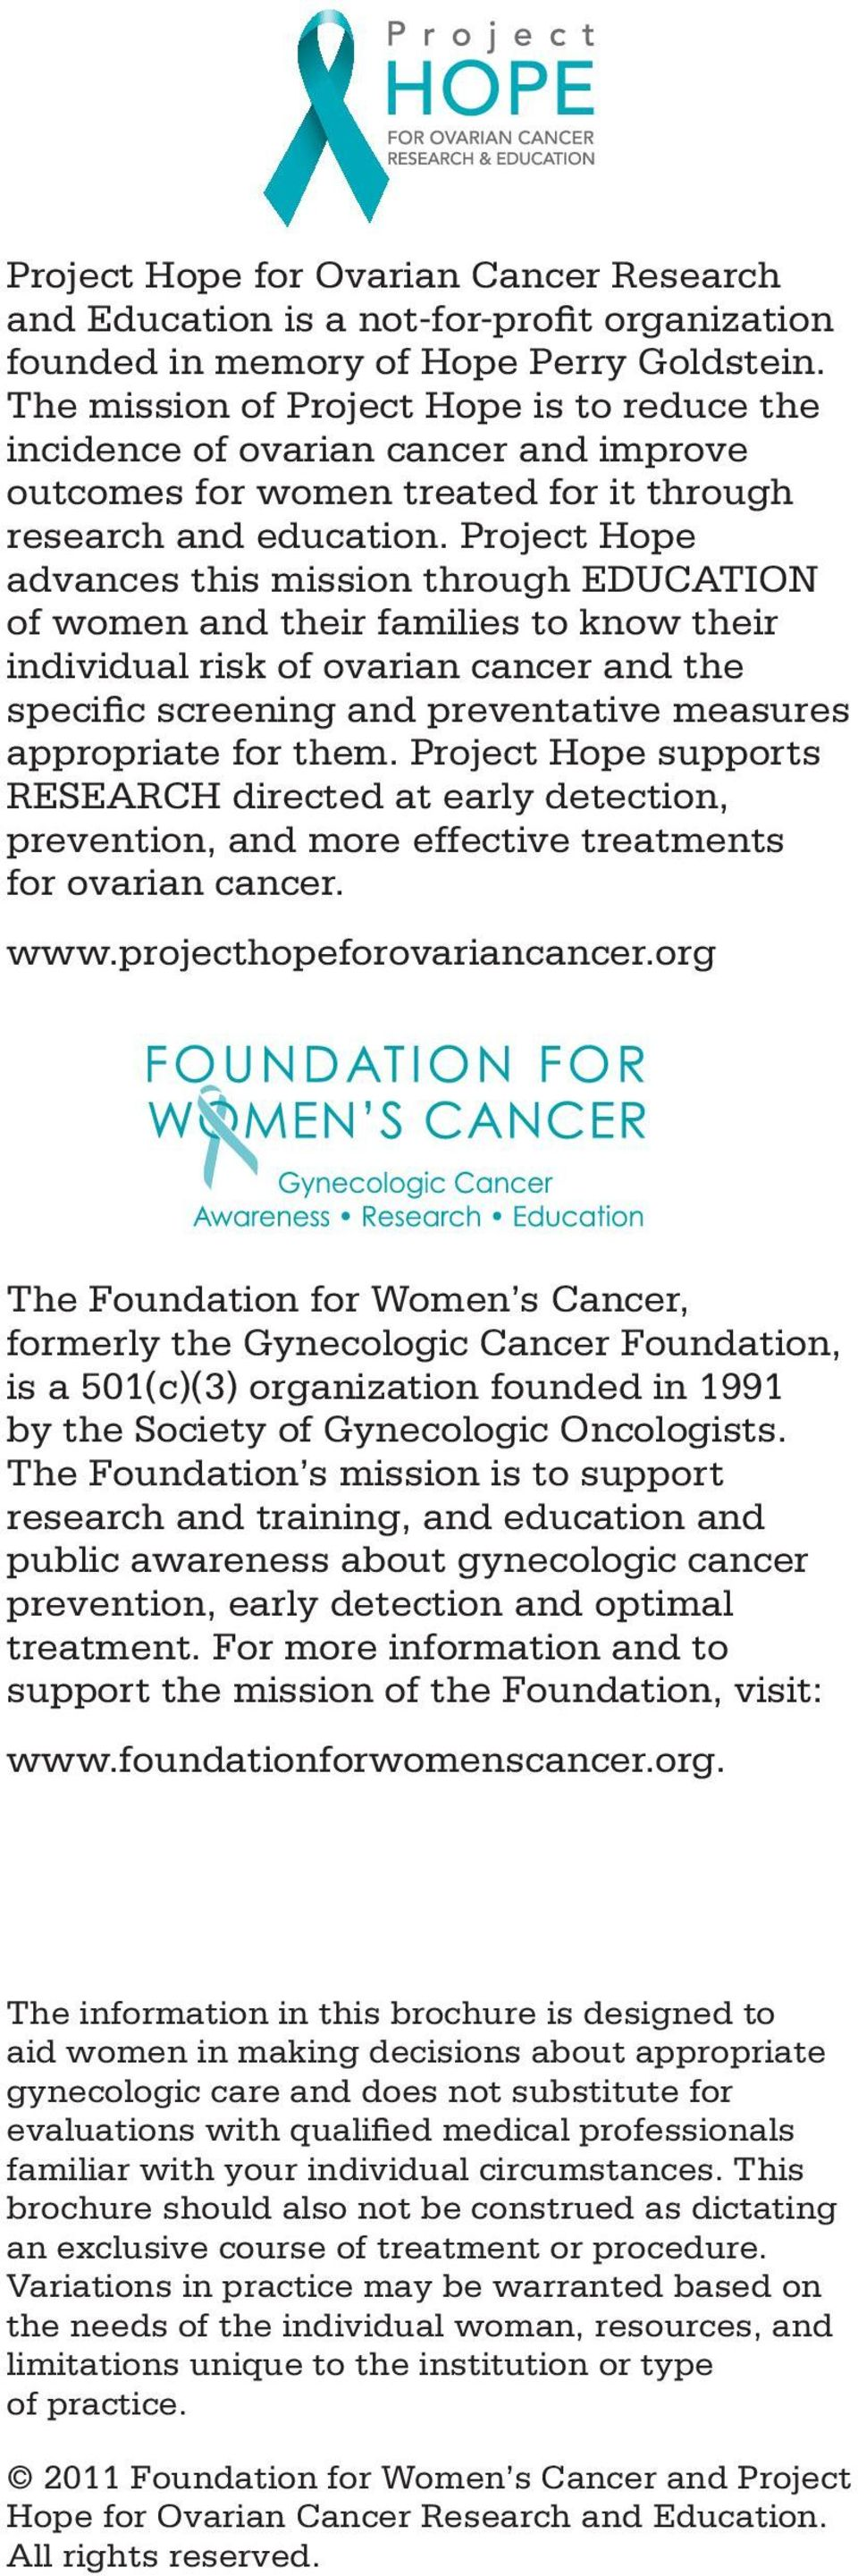 Project Hope advances this mission through EDUCATION of women and their families to know their individual risk of ovarian cancer and the specific screening and preventative measures appropriate for